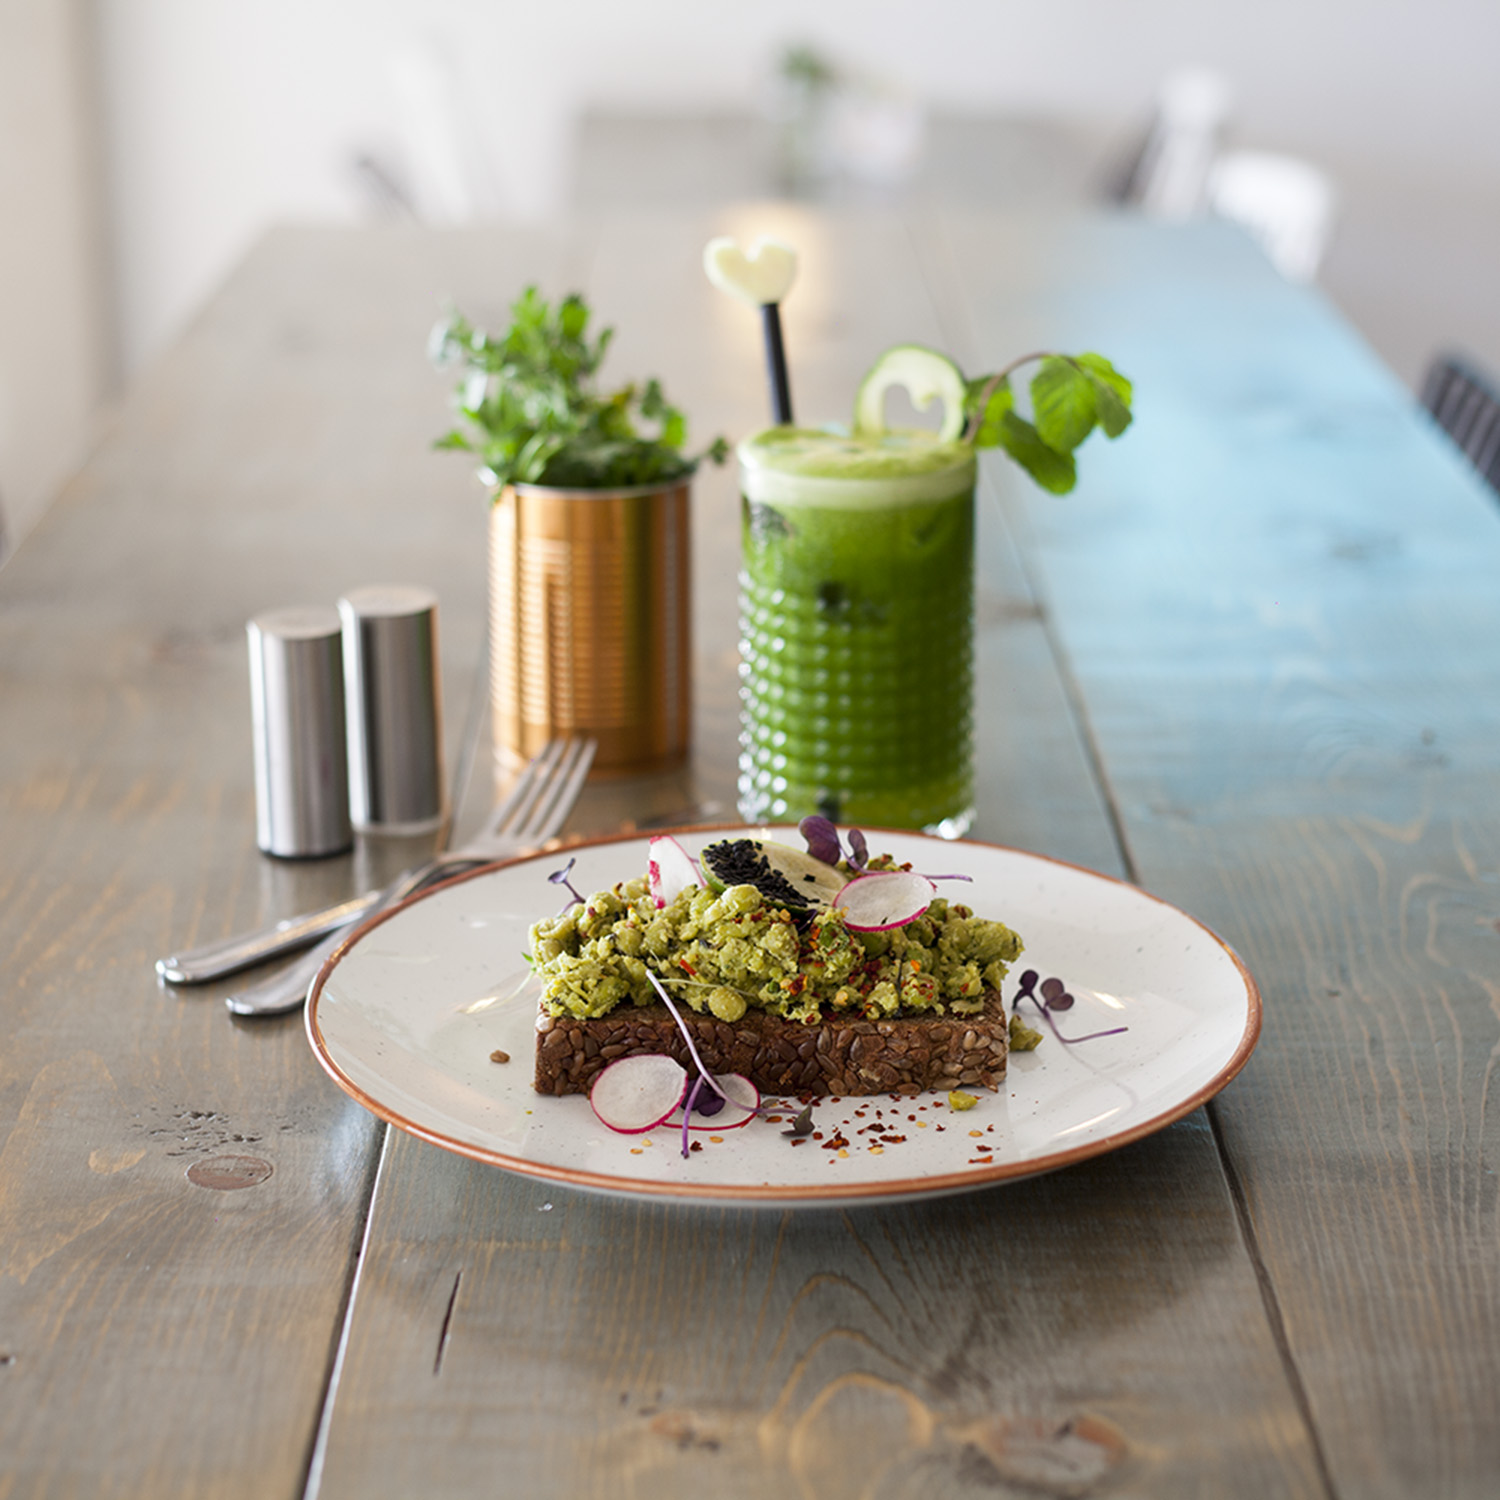 healthy breakfast at skinny kitchen canterbury bournemouth